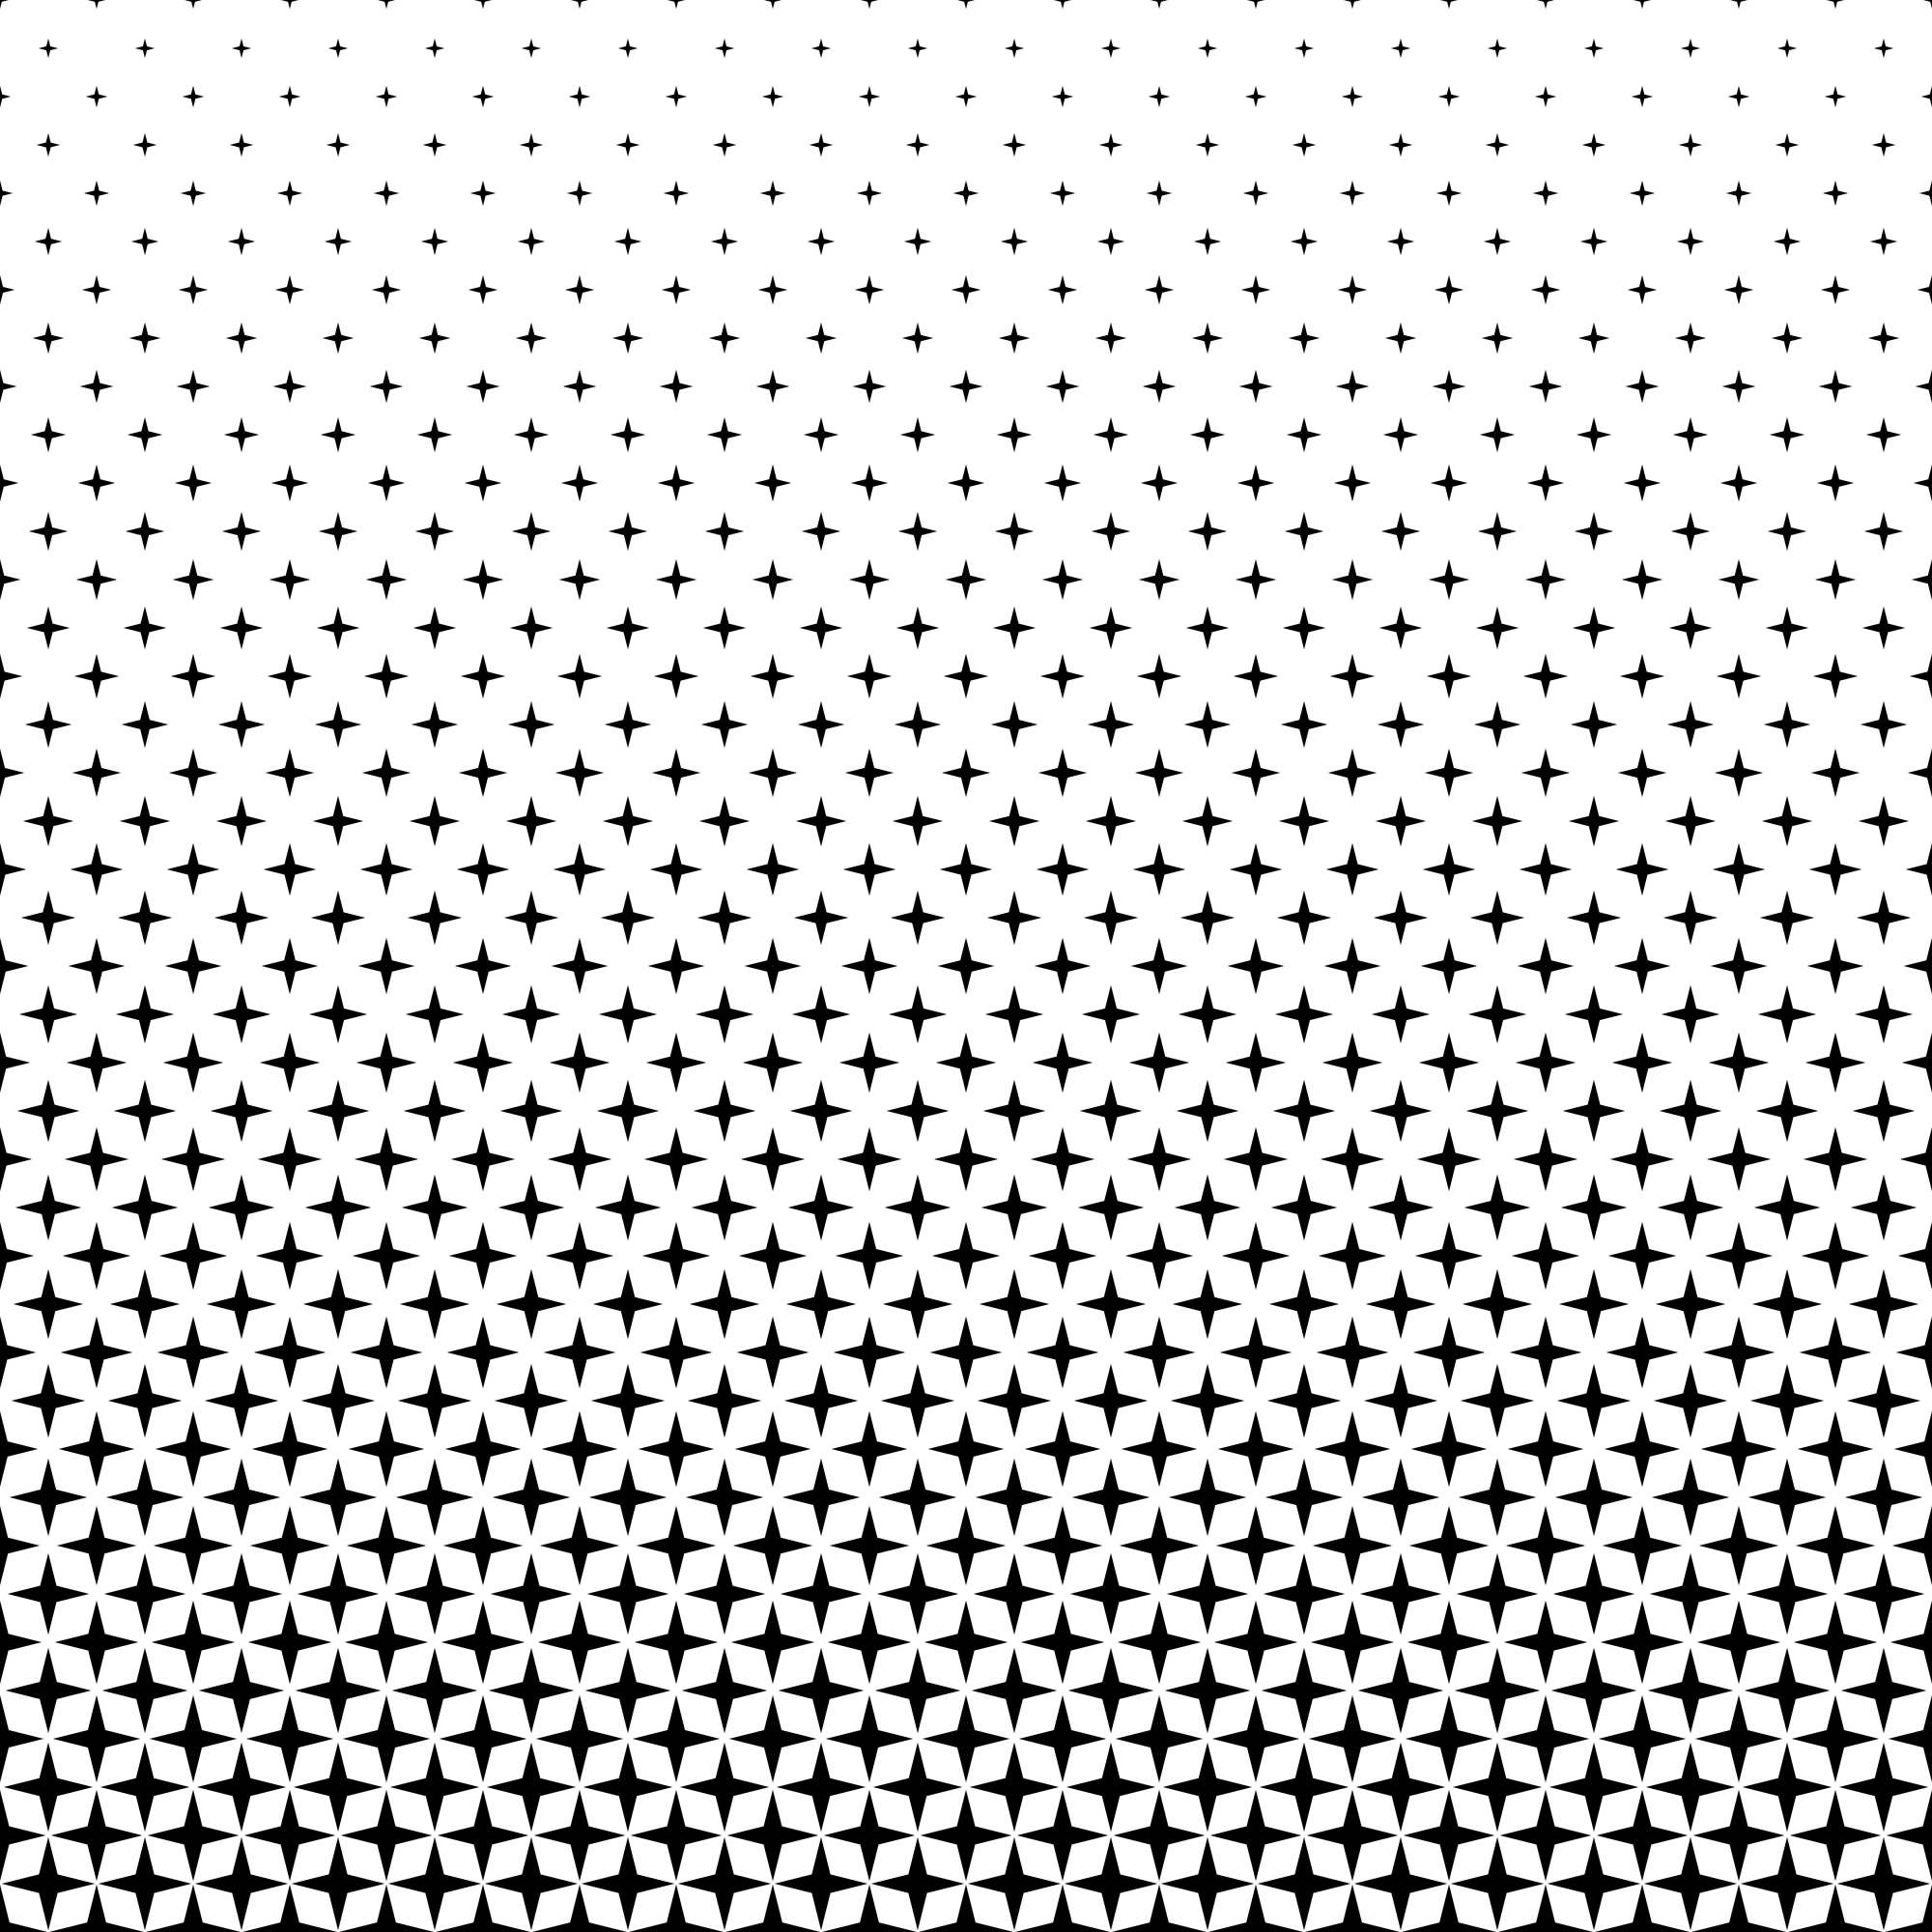 Black white star pattern - background graphic